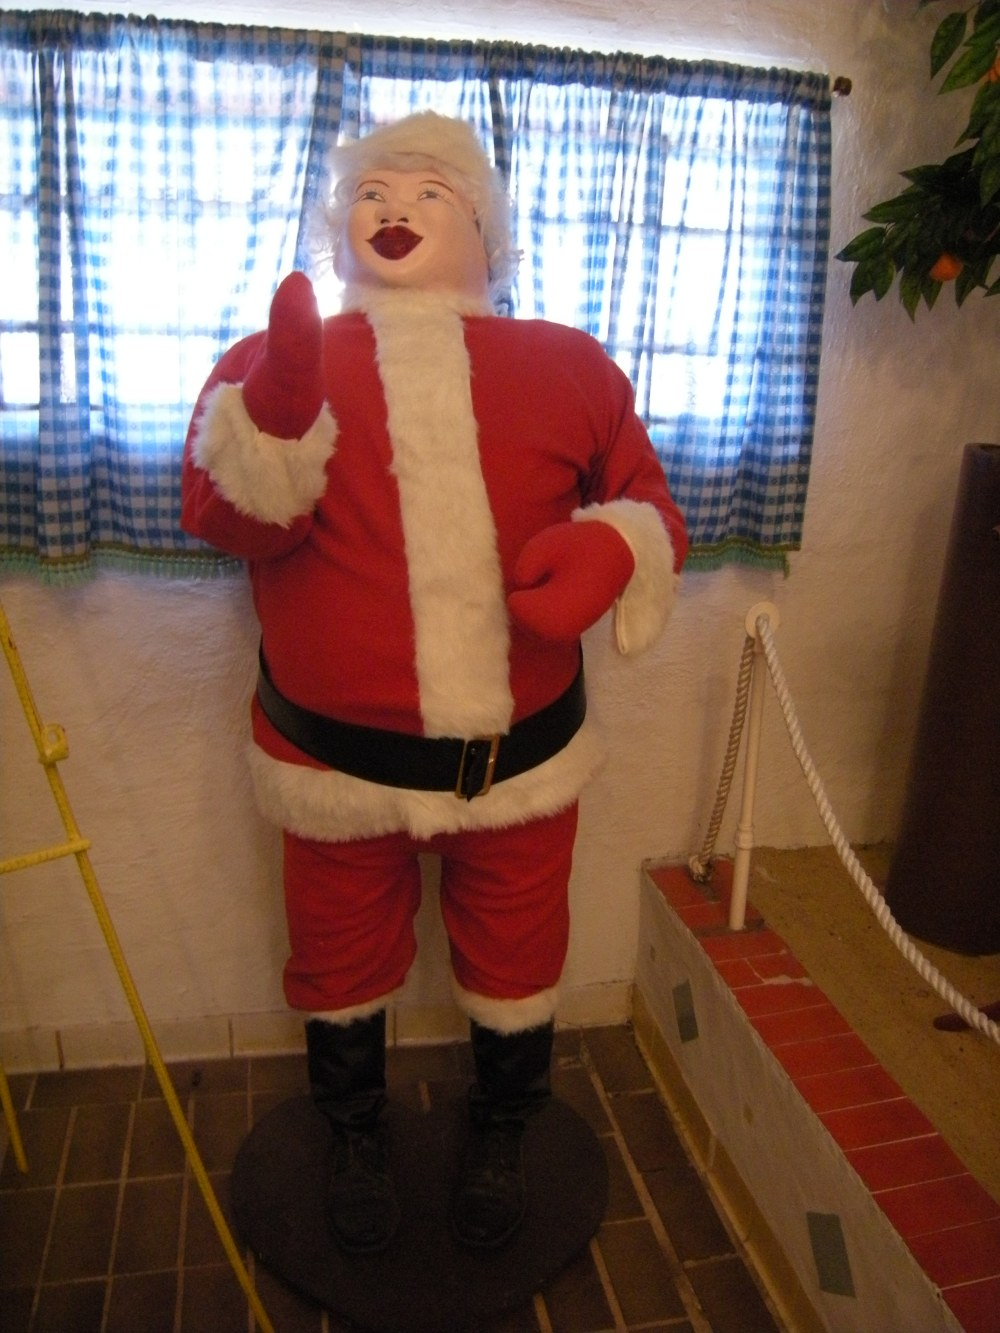 Instead of rosy cheeks, this Santa has rosy red lips!